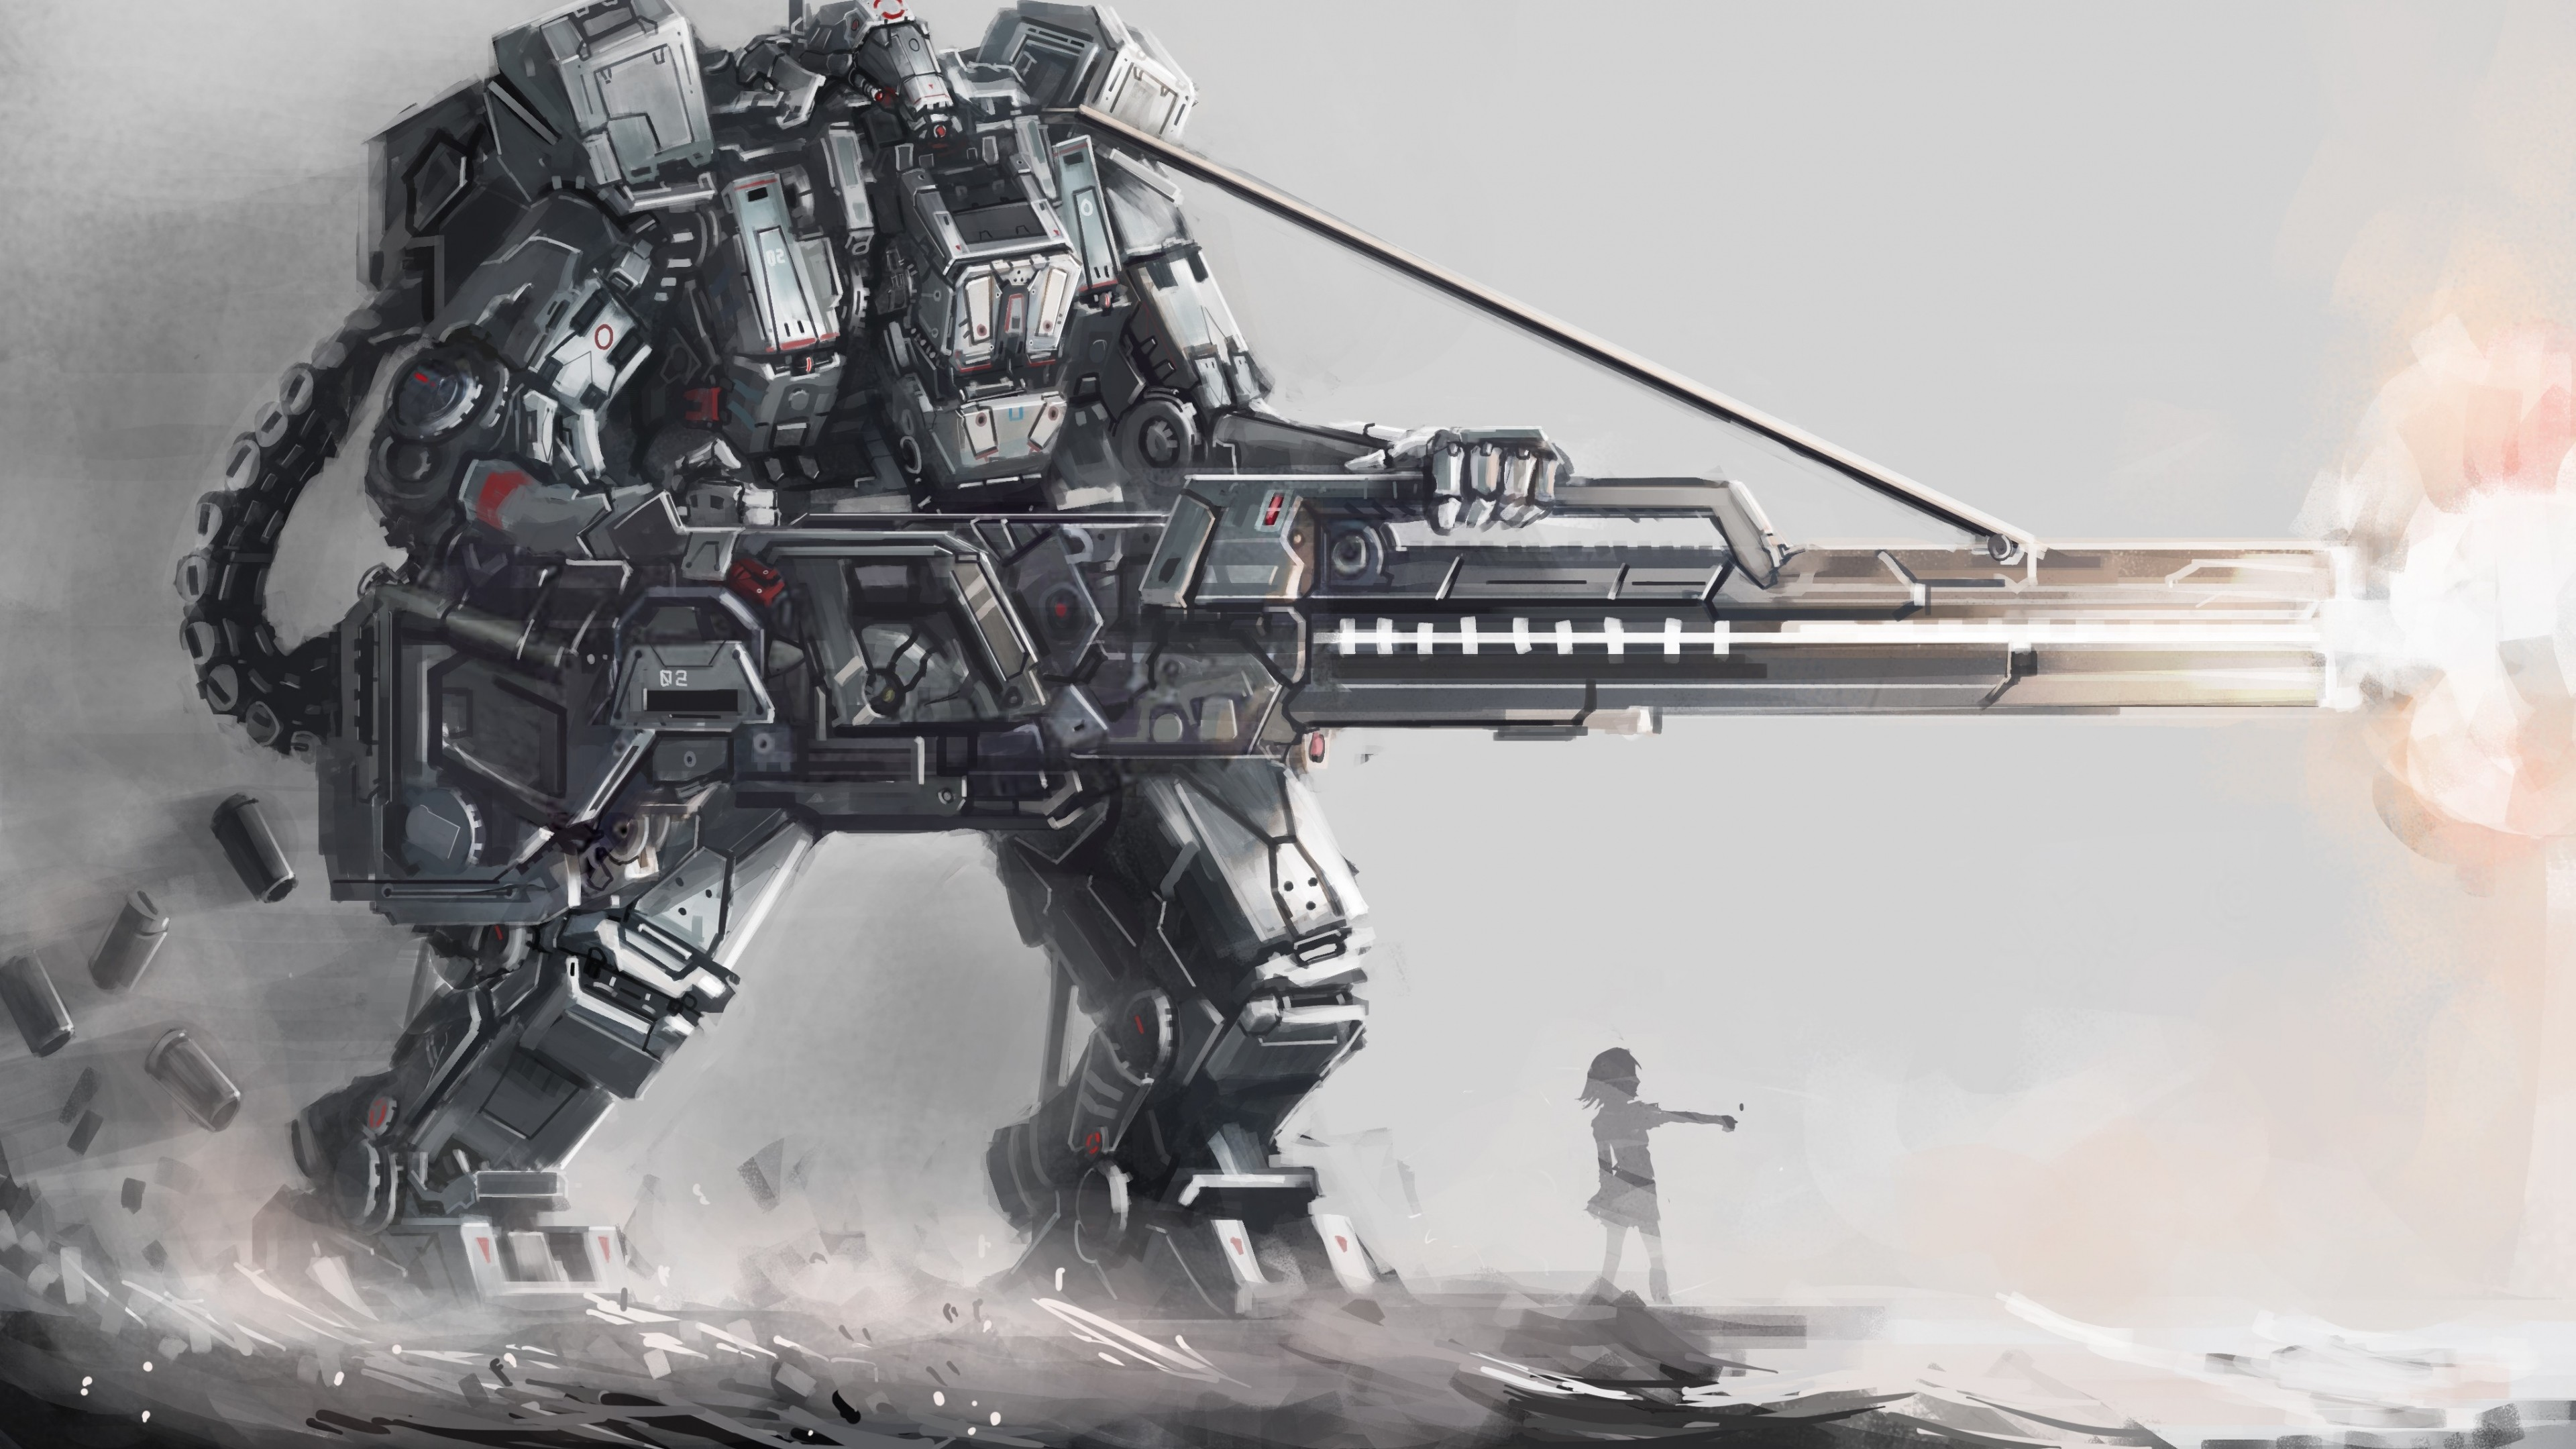 2569x1637 Anime Armored Core Artwork Fantasy Art Mecha Robots Free IPhone Or Android Full HD Wallpaper